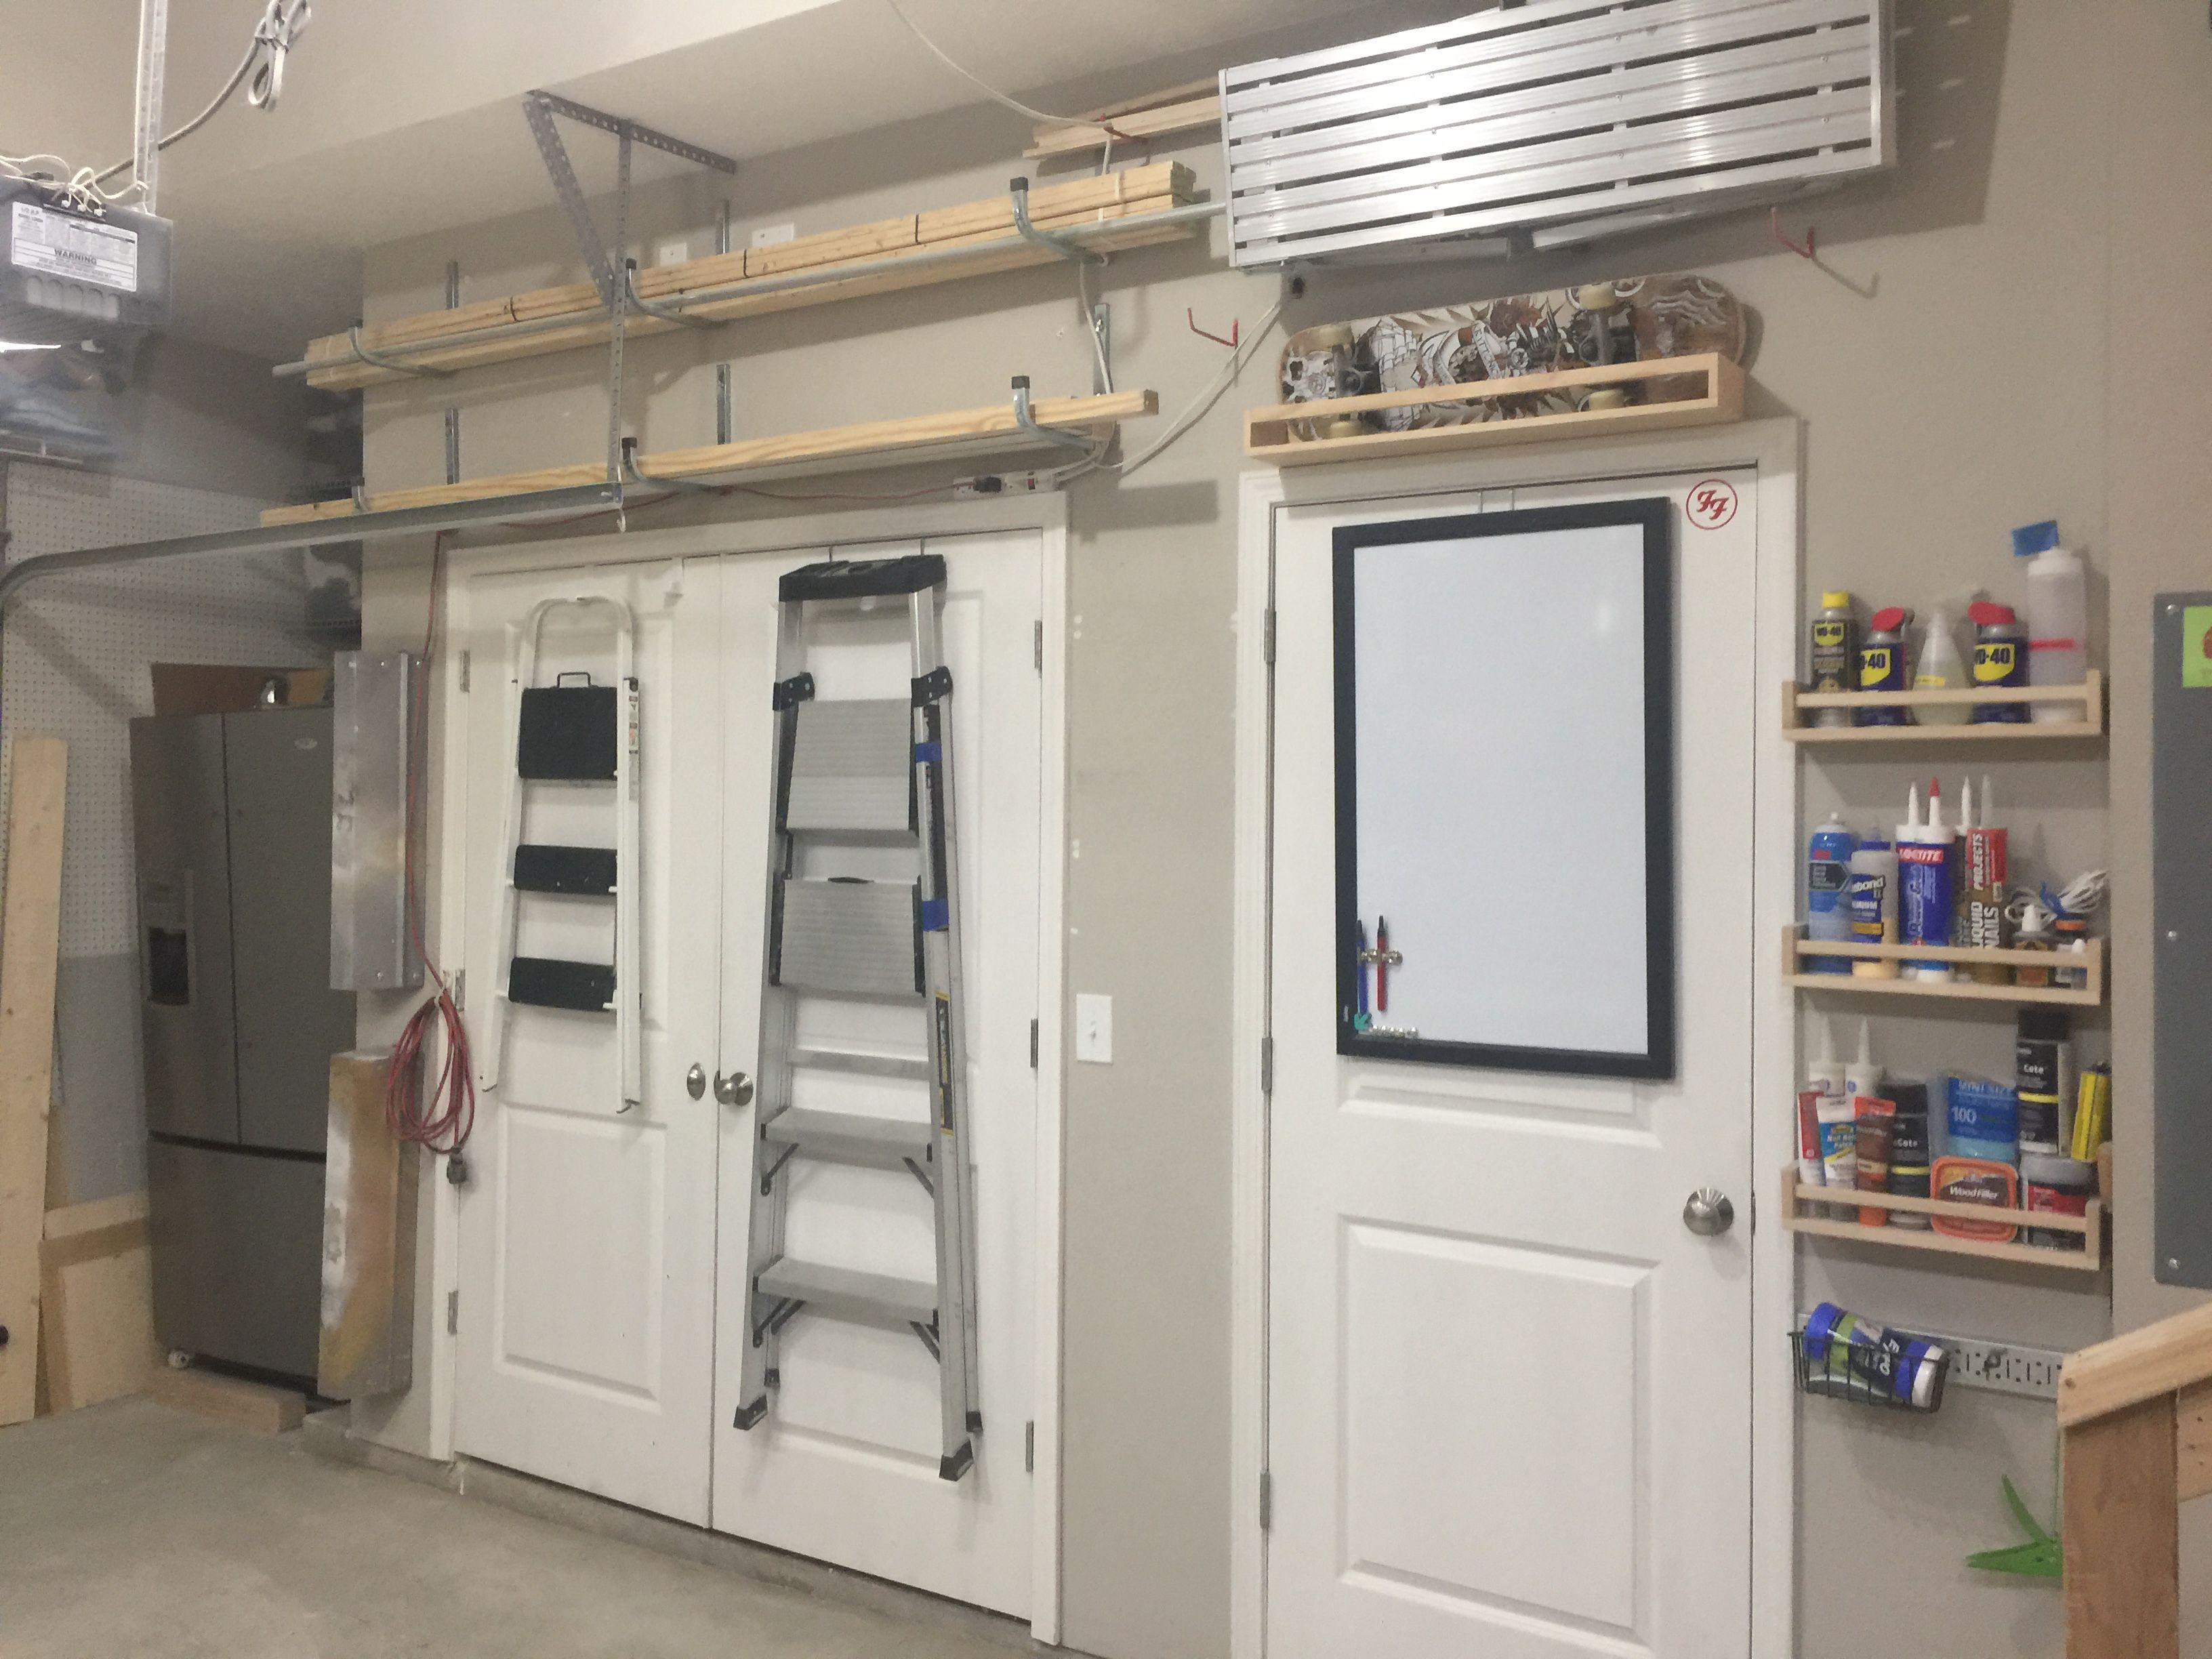 Garage Organization For Small Spaces Vertical Storage Pegboard Shelving Drawers